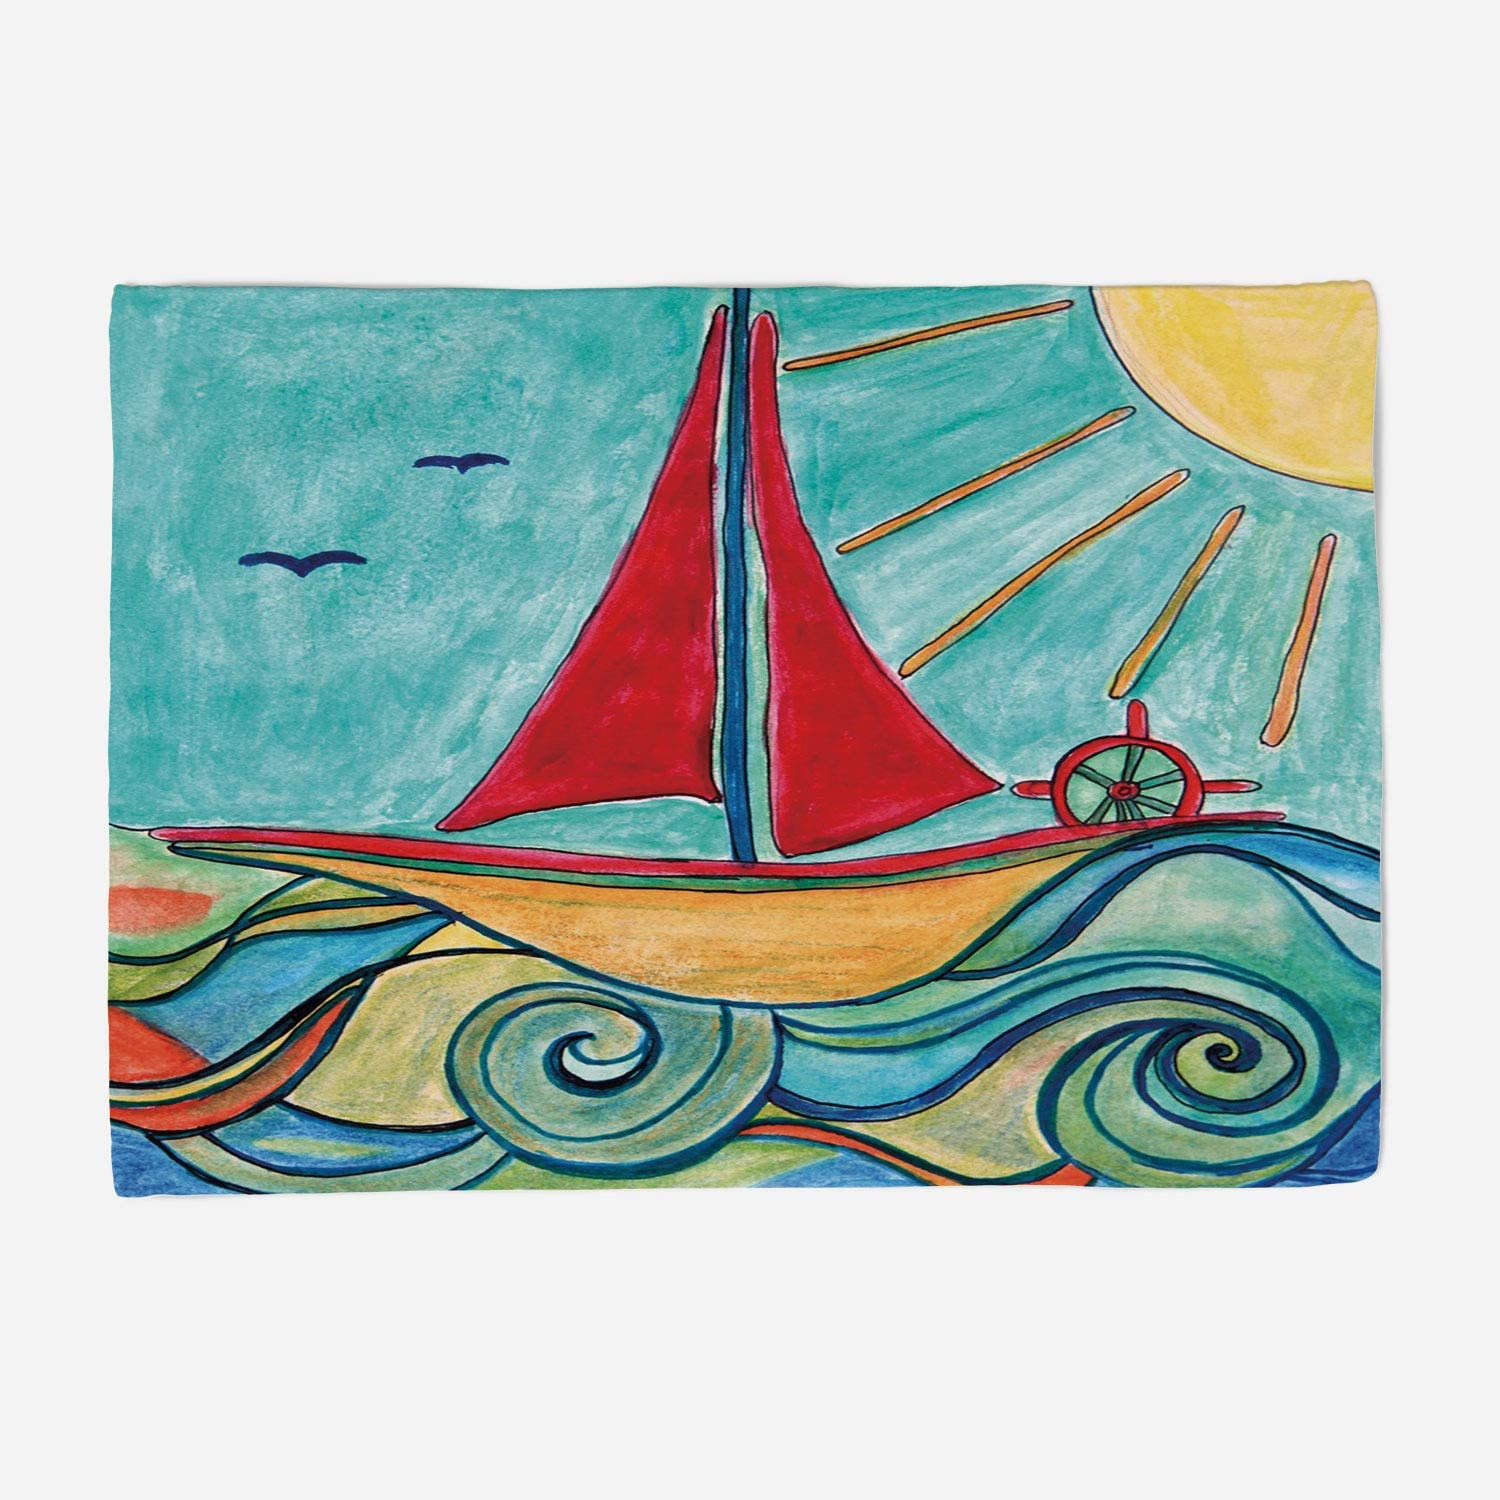 YOLIYANA Blanket Bedspread Soft Fleece Throw Blanket 59x49 inches Art,Baby Boy Paintings Ship in The Waves of Ocean Sun Kids Girls Nursery Picture Decorative,Teal Red Earth Yellow